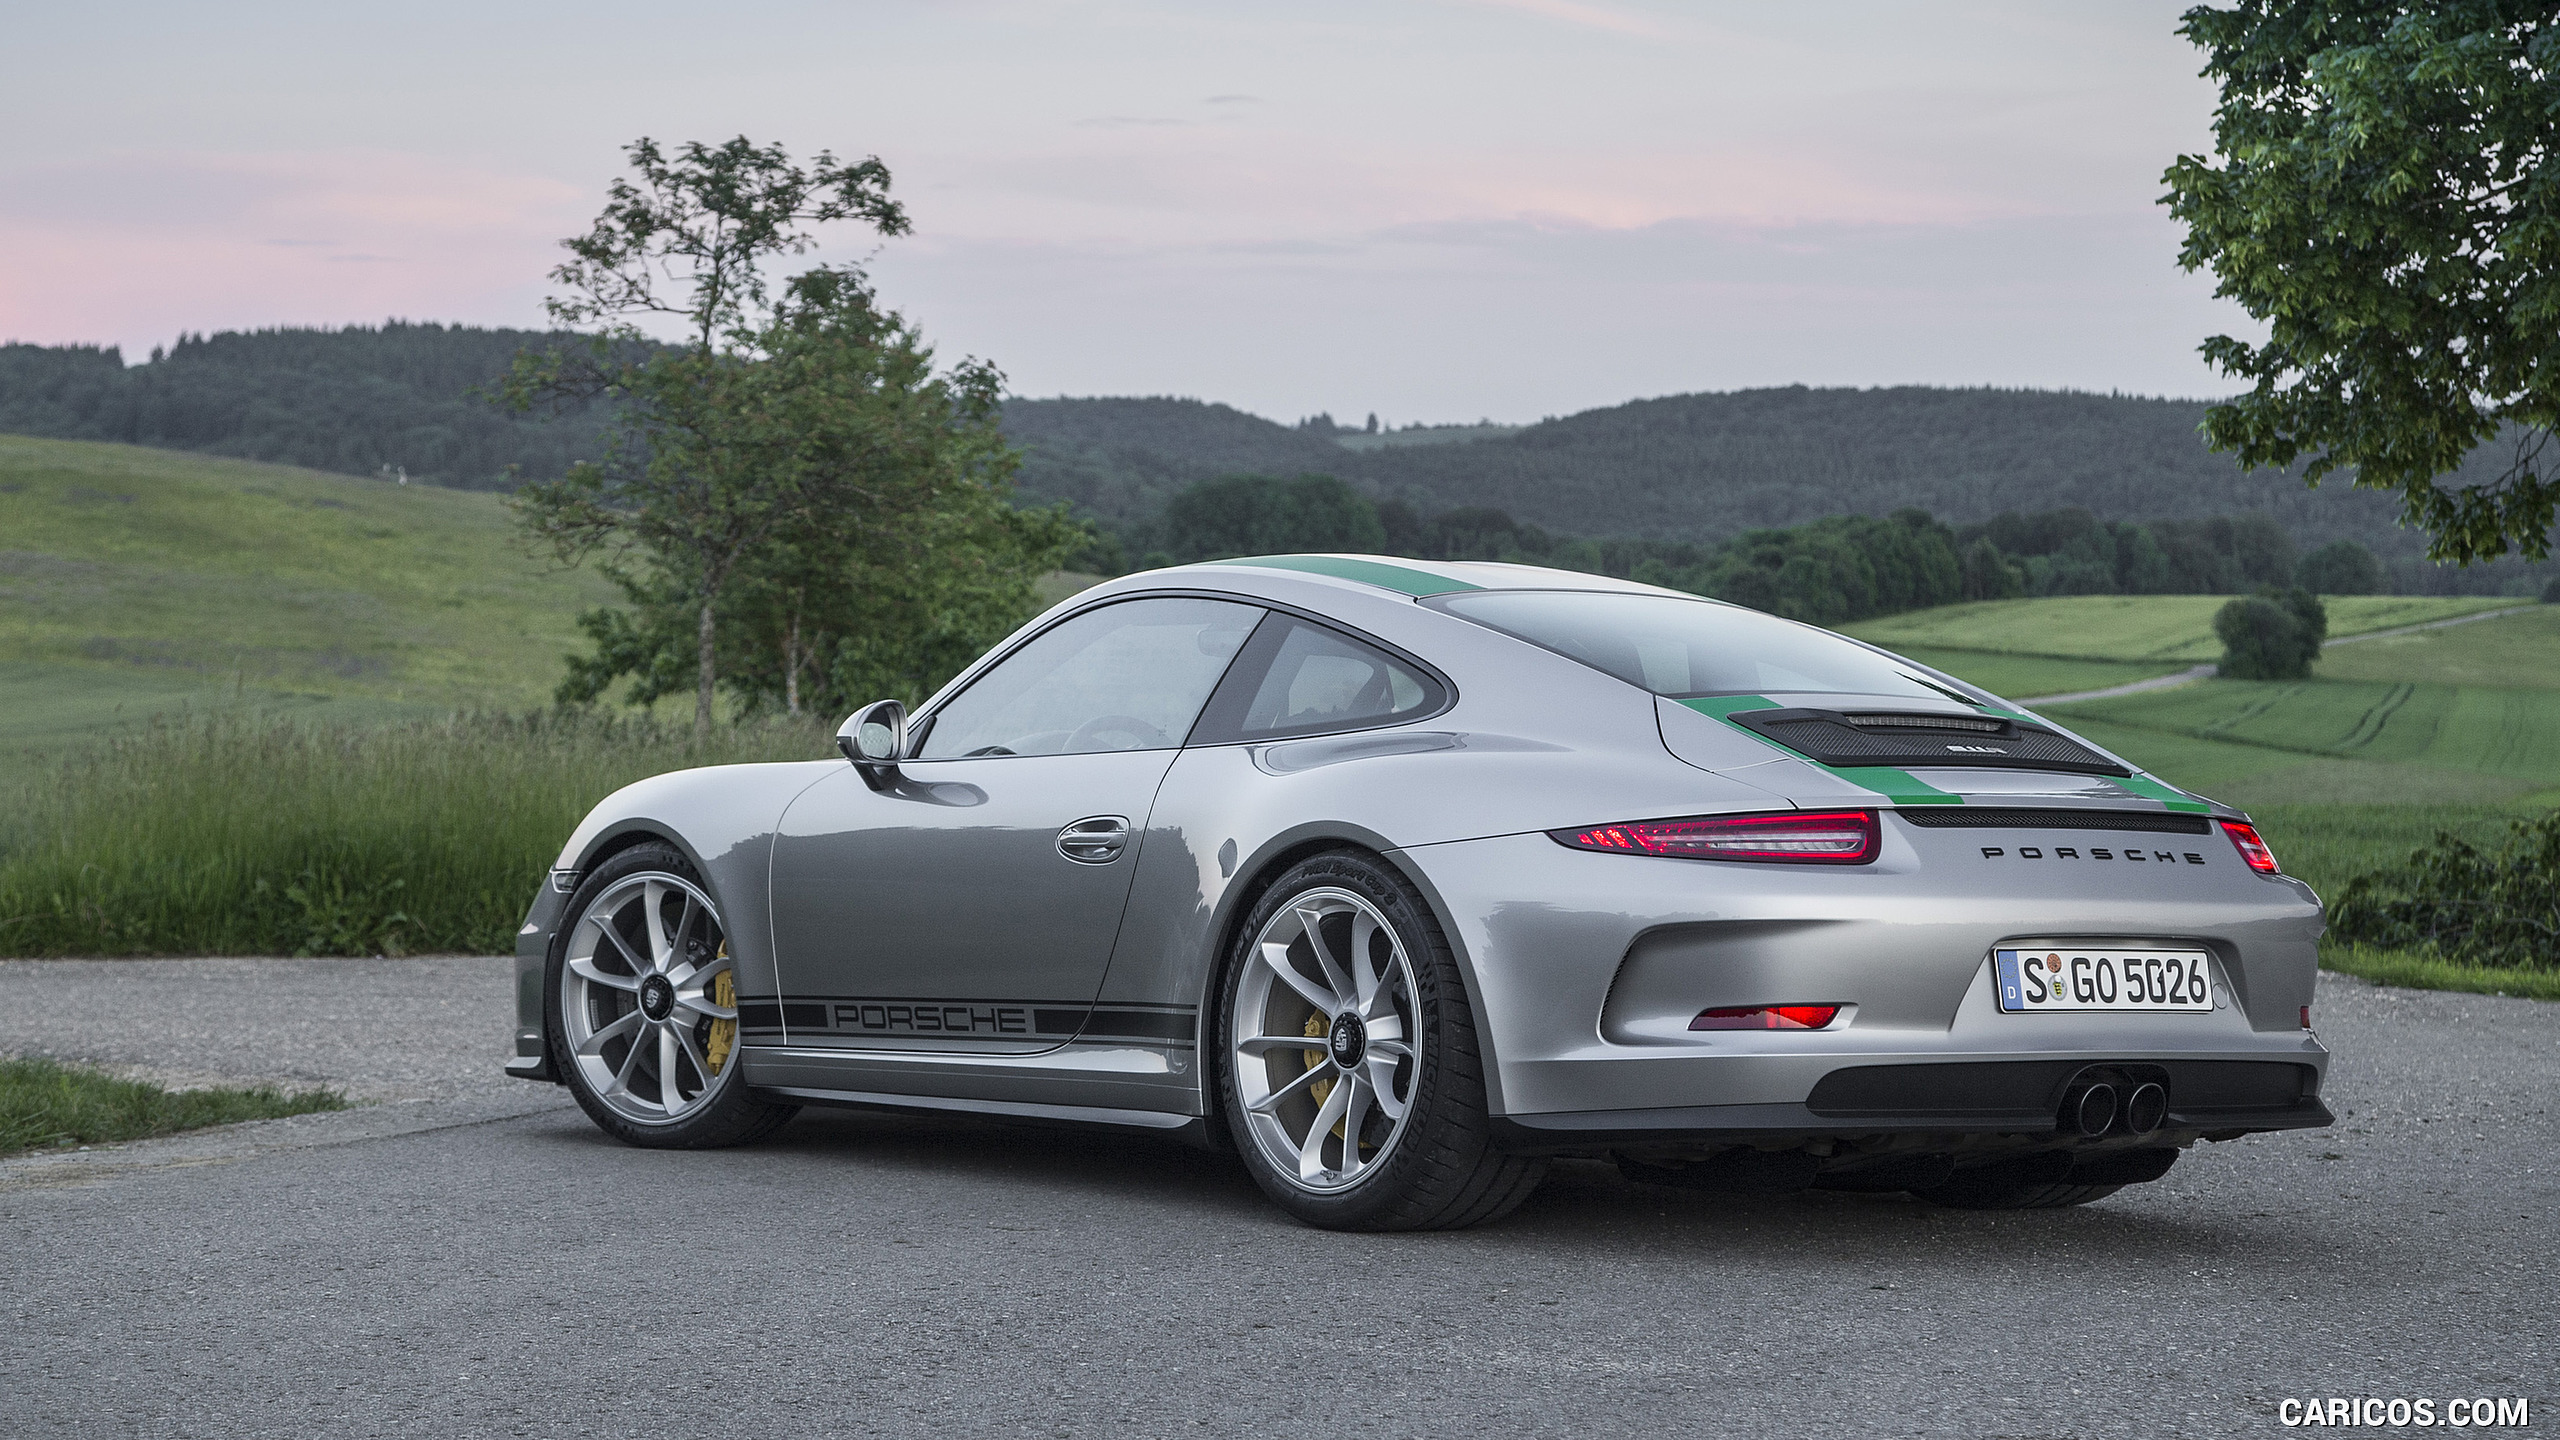 2017 Porsche 911 R Grey   Rear Three Quarter HD 2560x1440